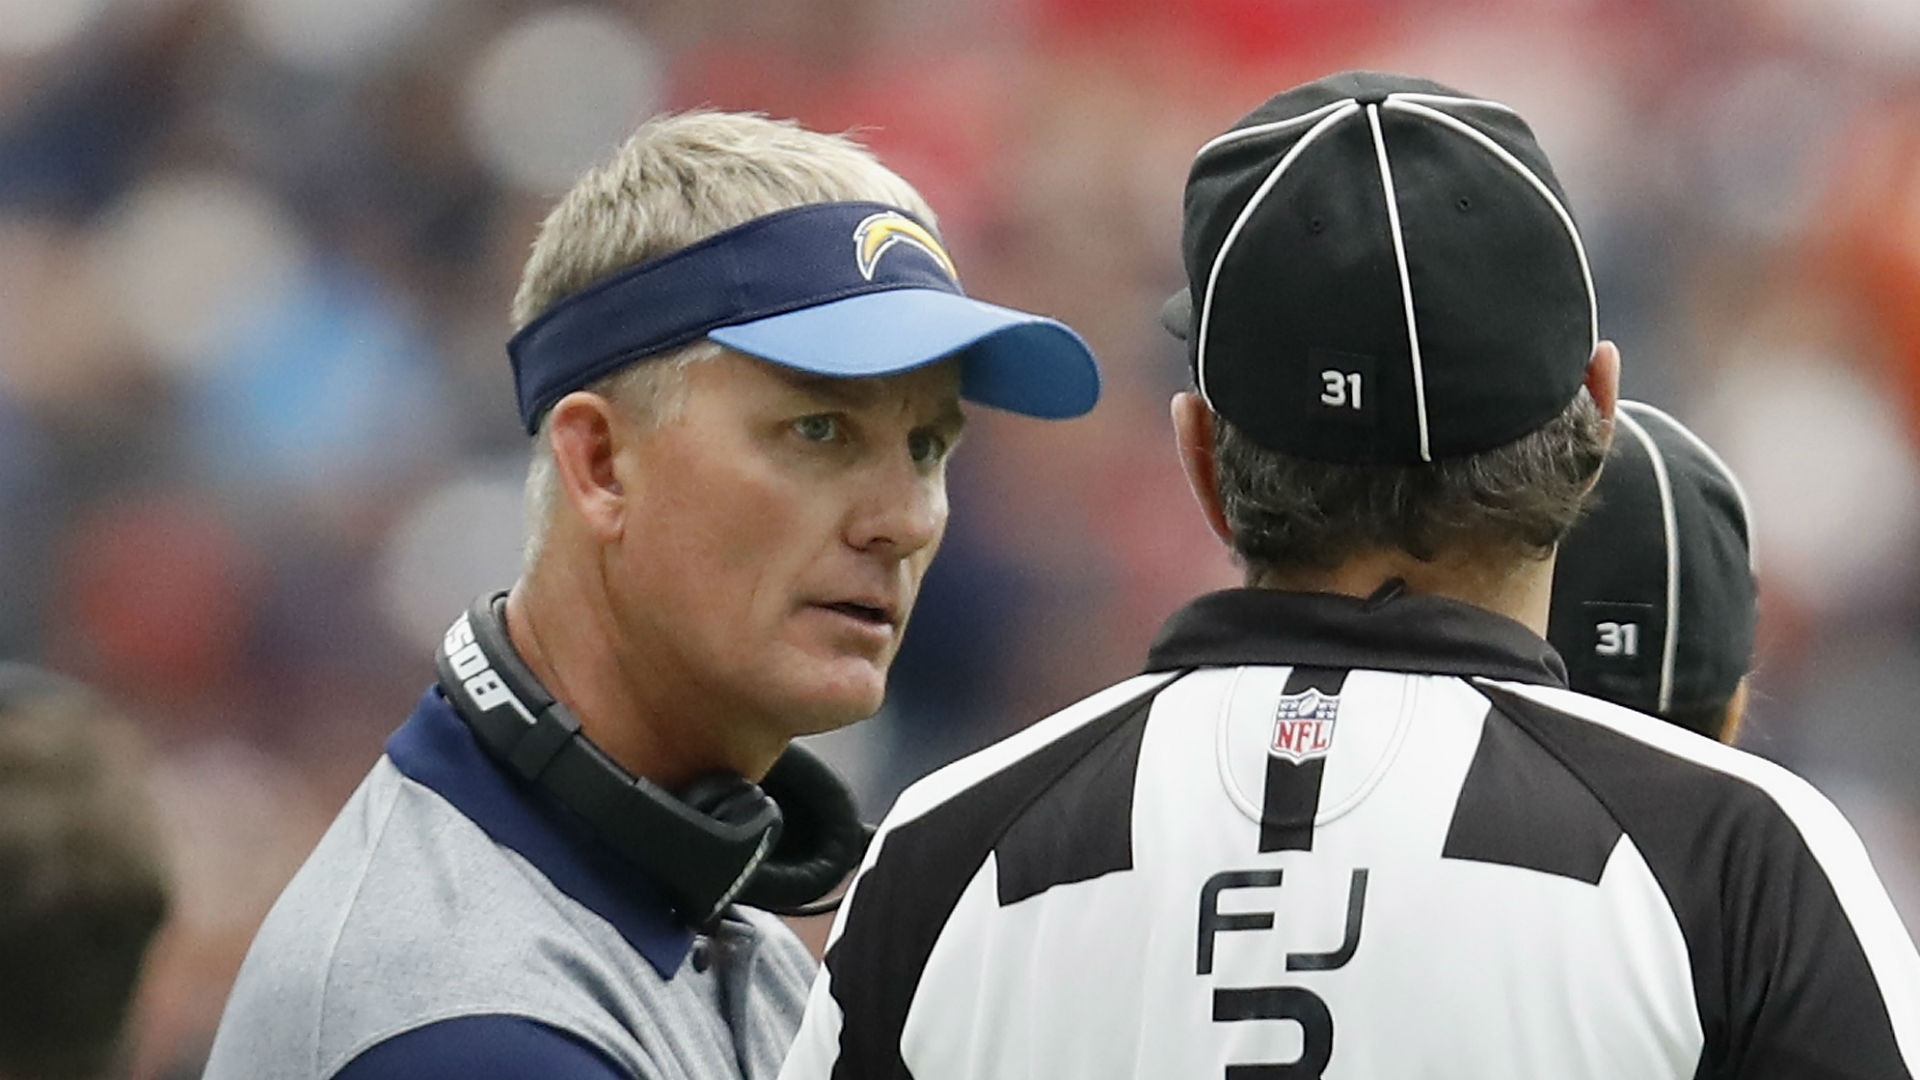 Other Chargers Fire Coach Mike Mccoy Sportal